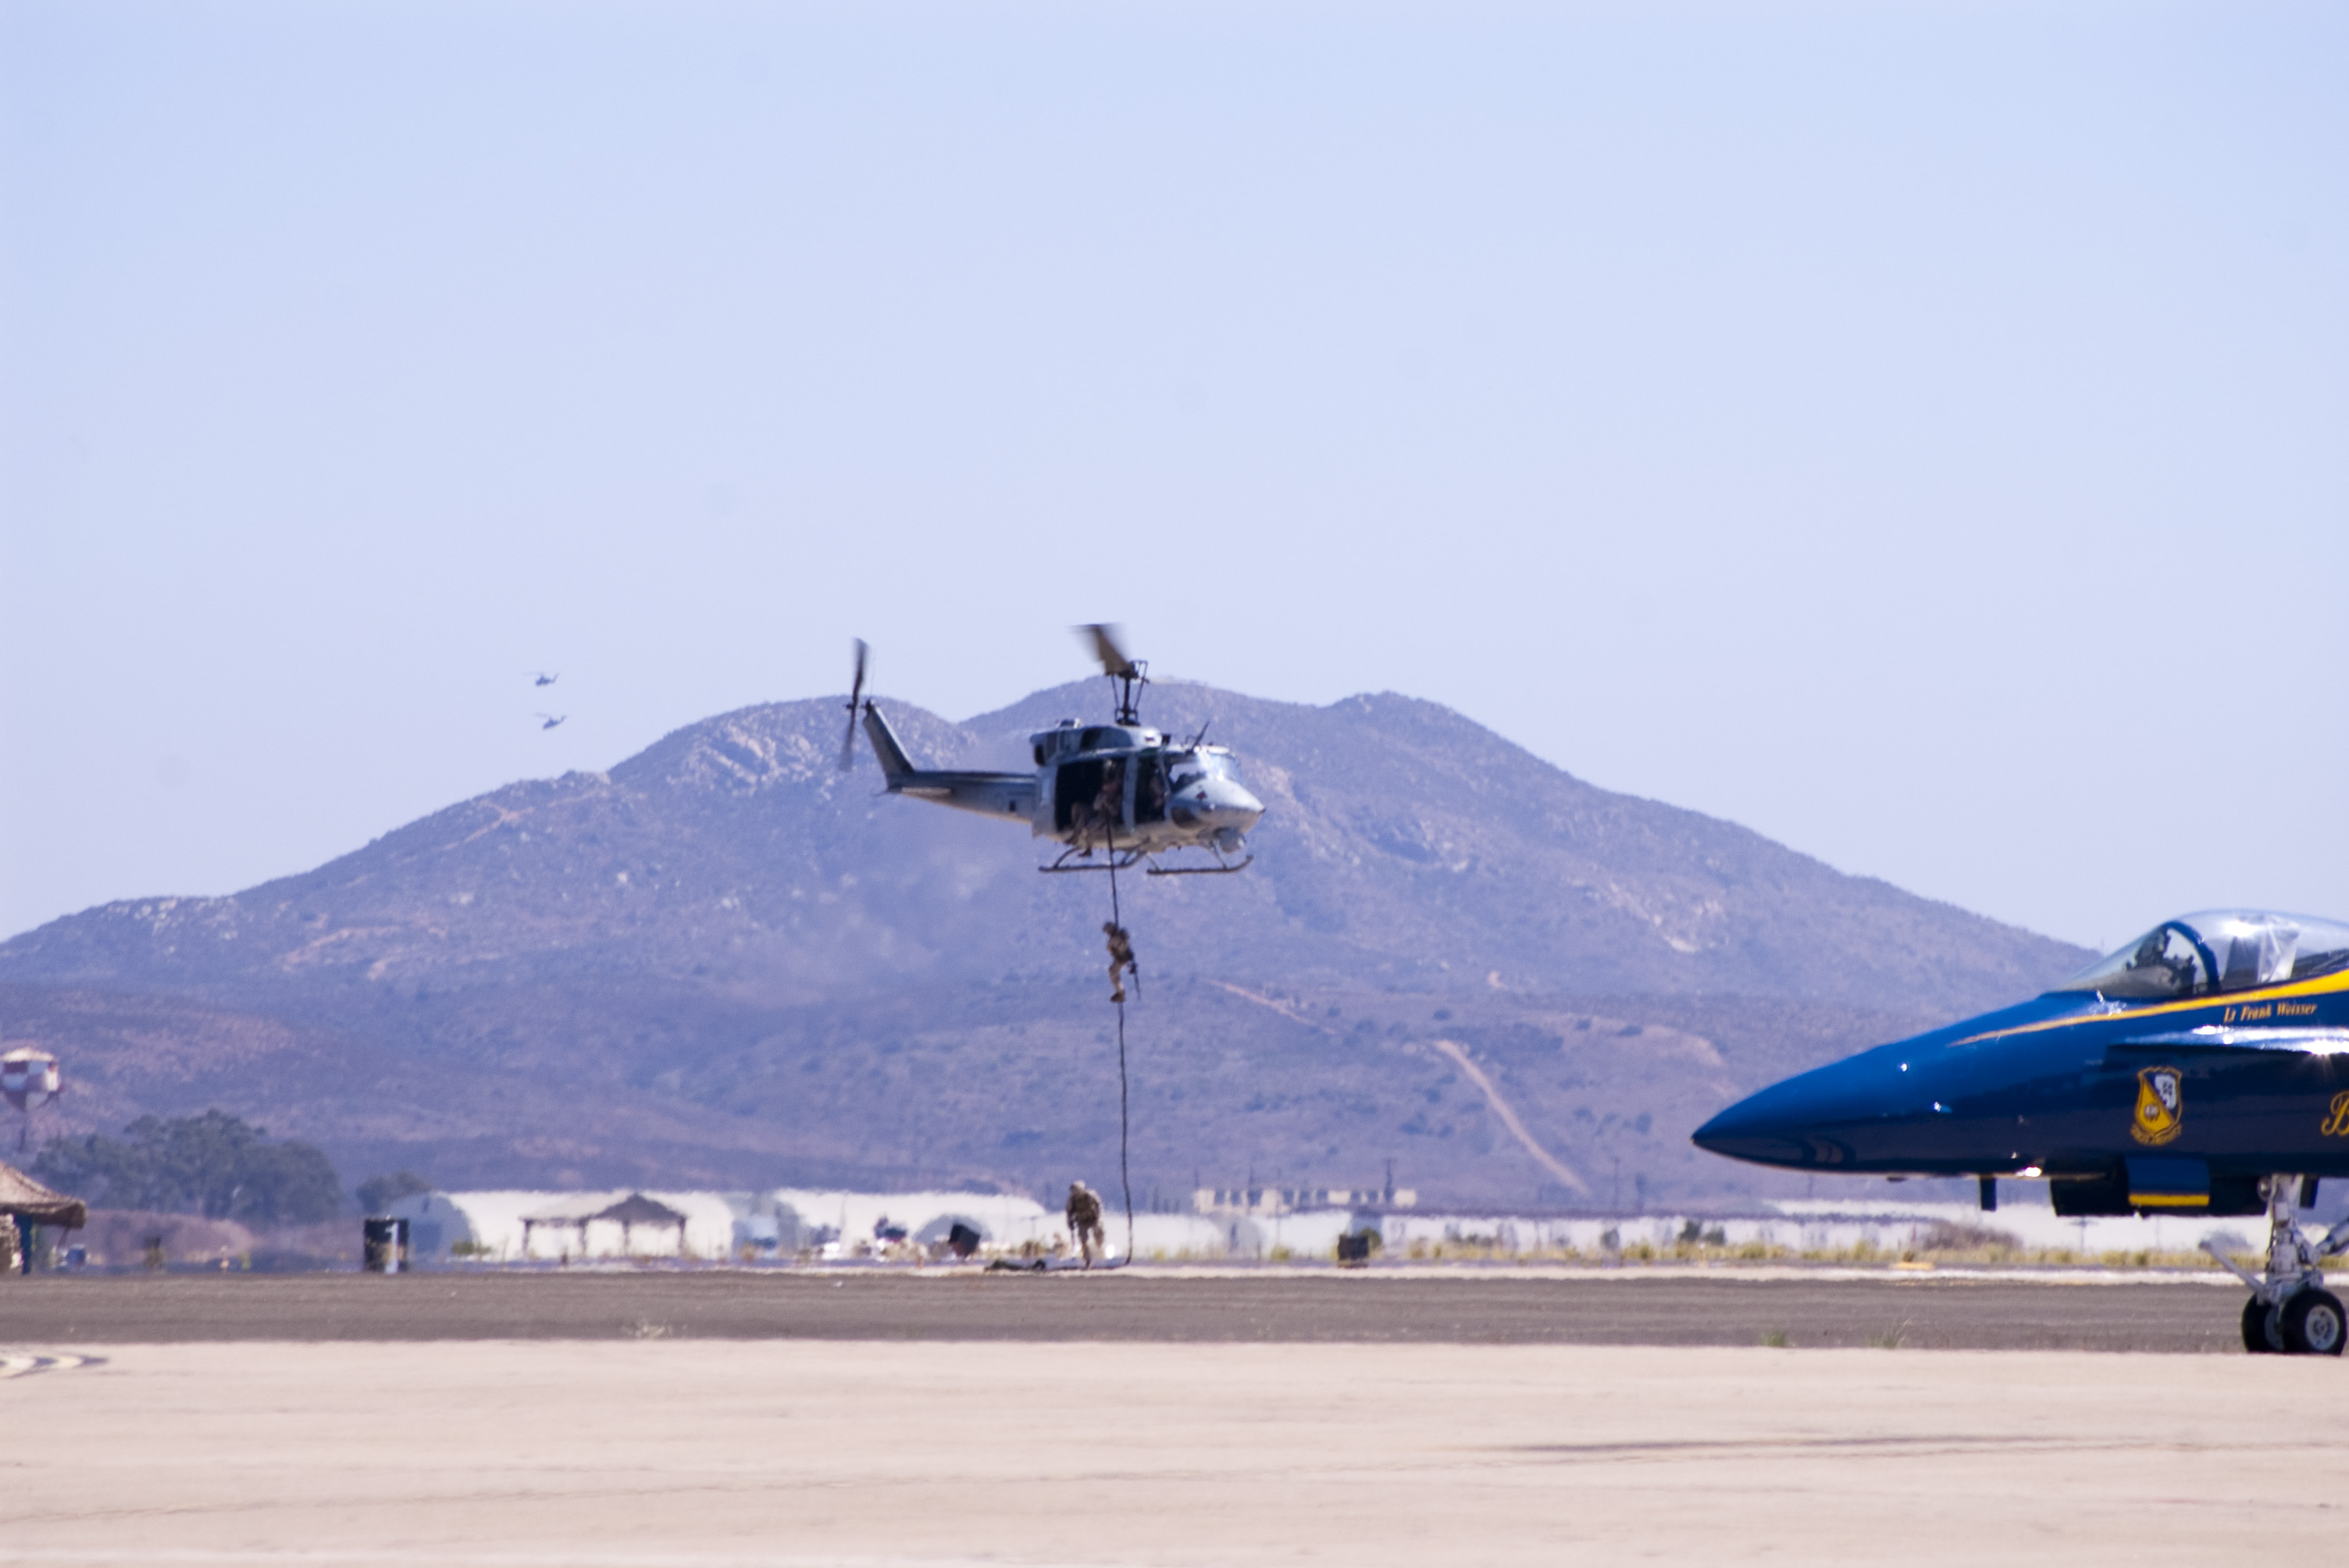 huey helicopter rotor sound with New Diyagram Helecopter Photo on Helicopters additionally Vietnam together with Philippine Air Force Bell 212 Vip besides Picture Of The Day Teufelshunde Bare Their Teeth Usmc On The Flight Line additionally Most Important Helicopters.